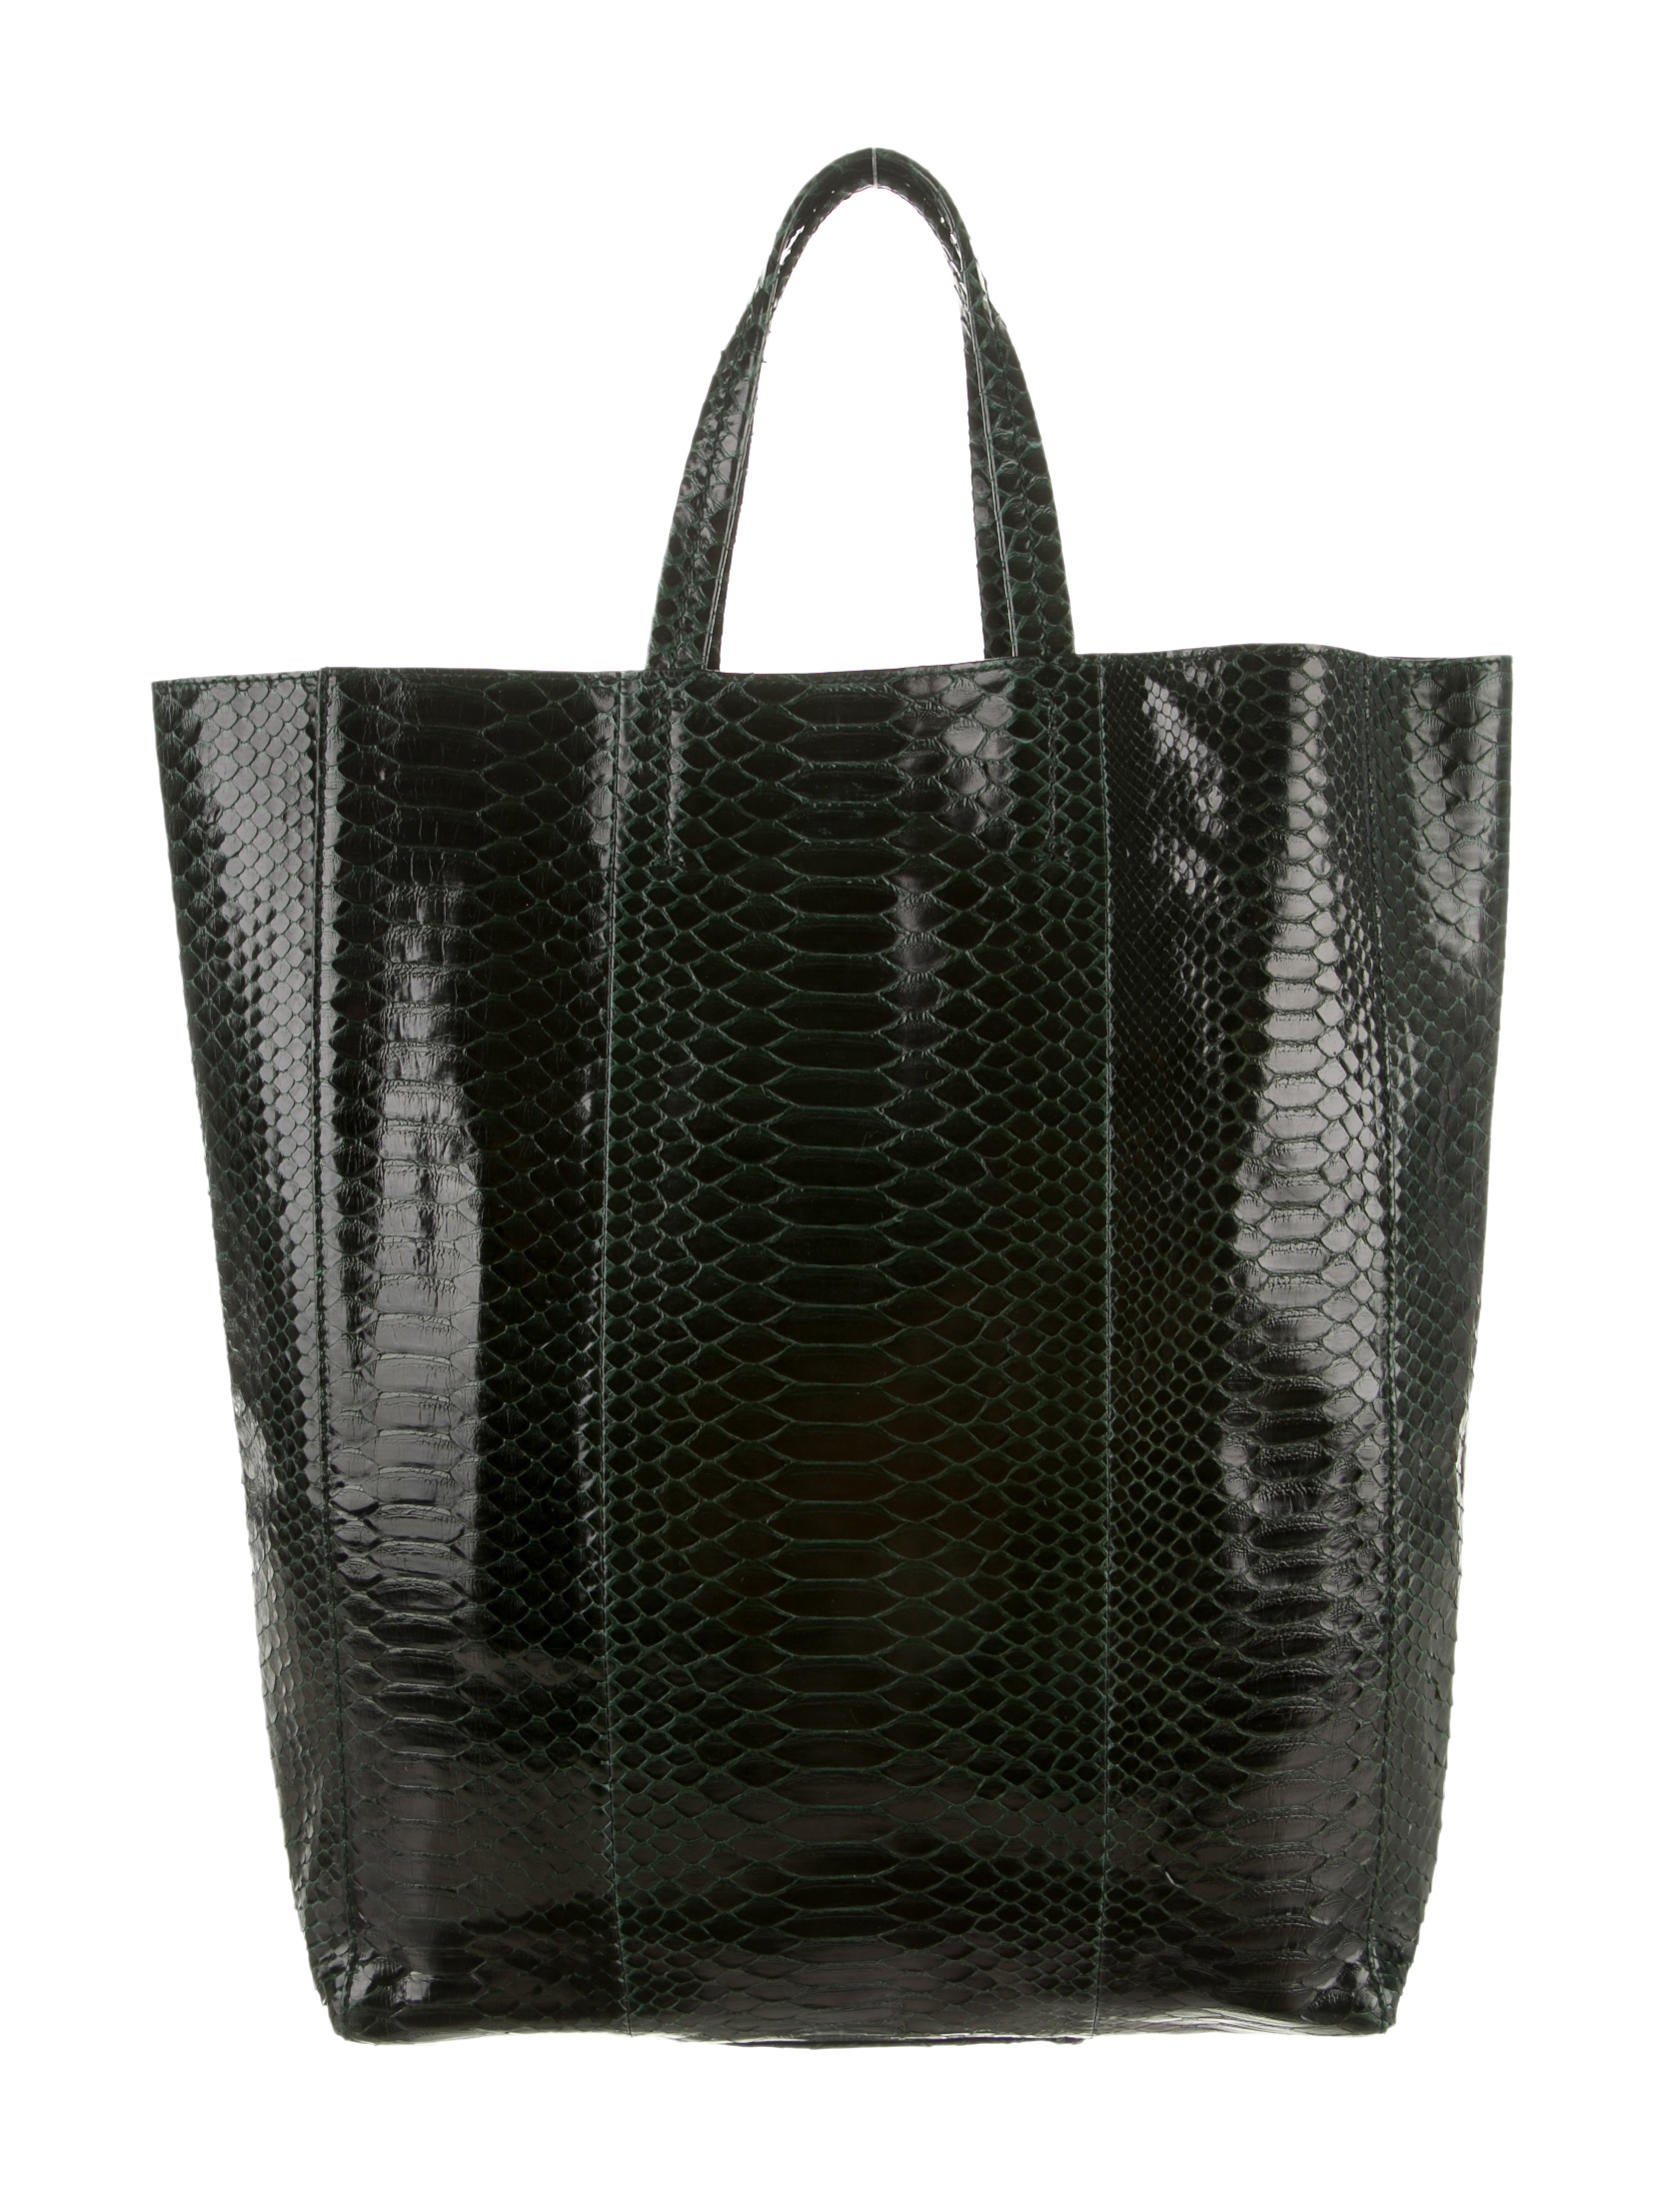 celine luggage tote price - celine python vertical cabas tote, celine shopper tote bag